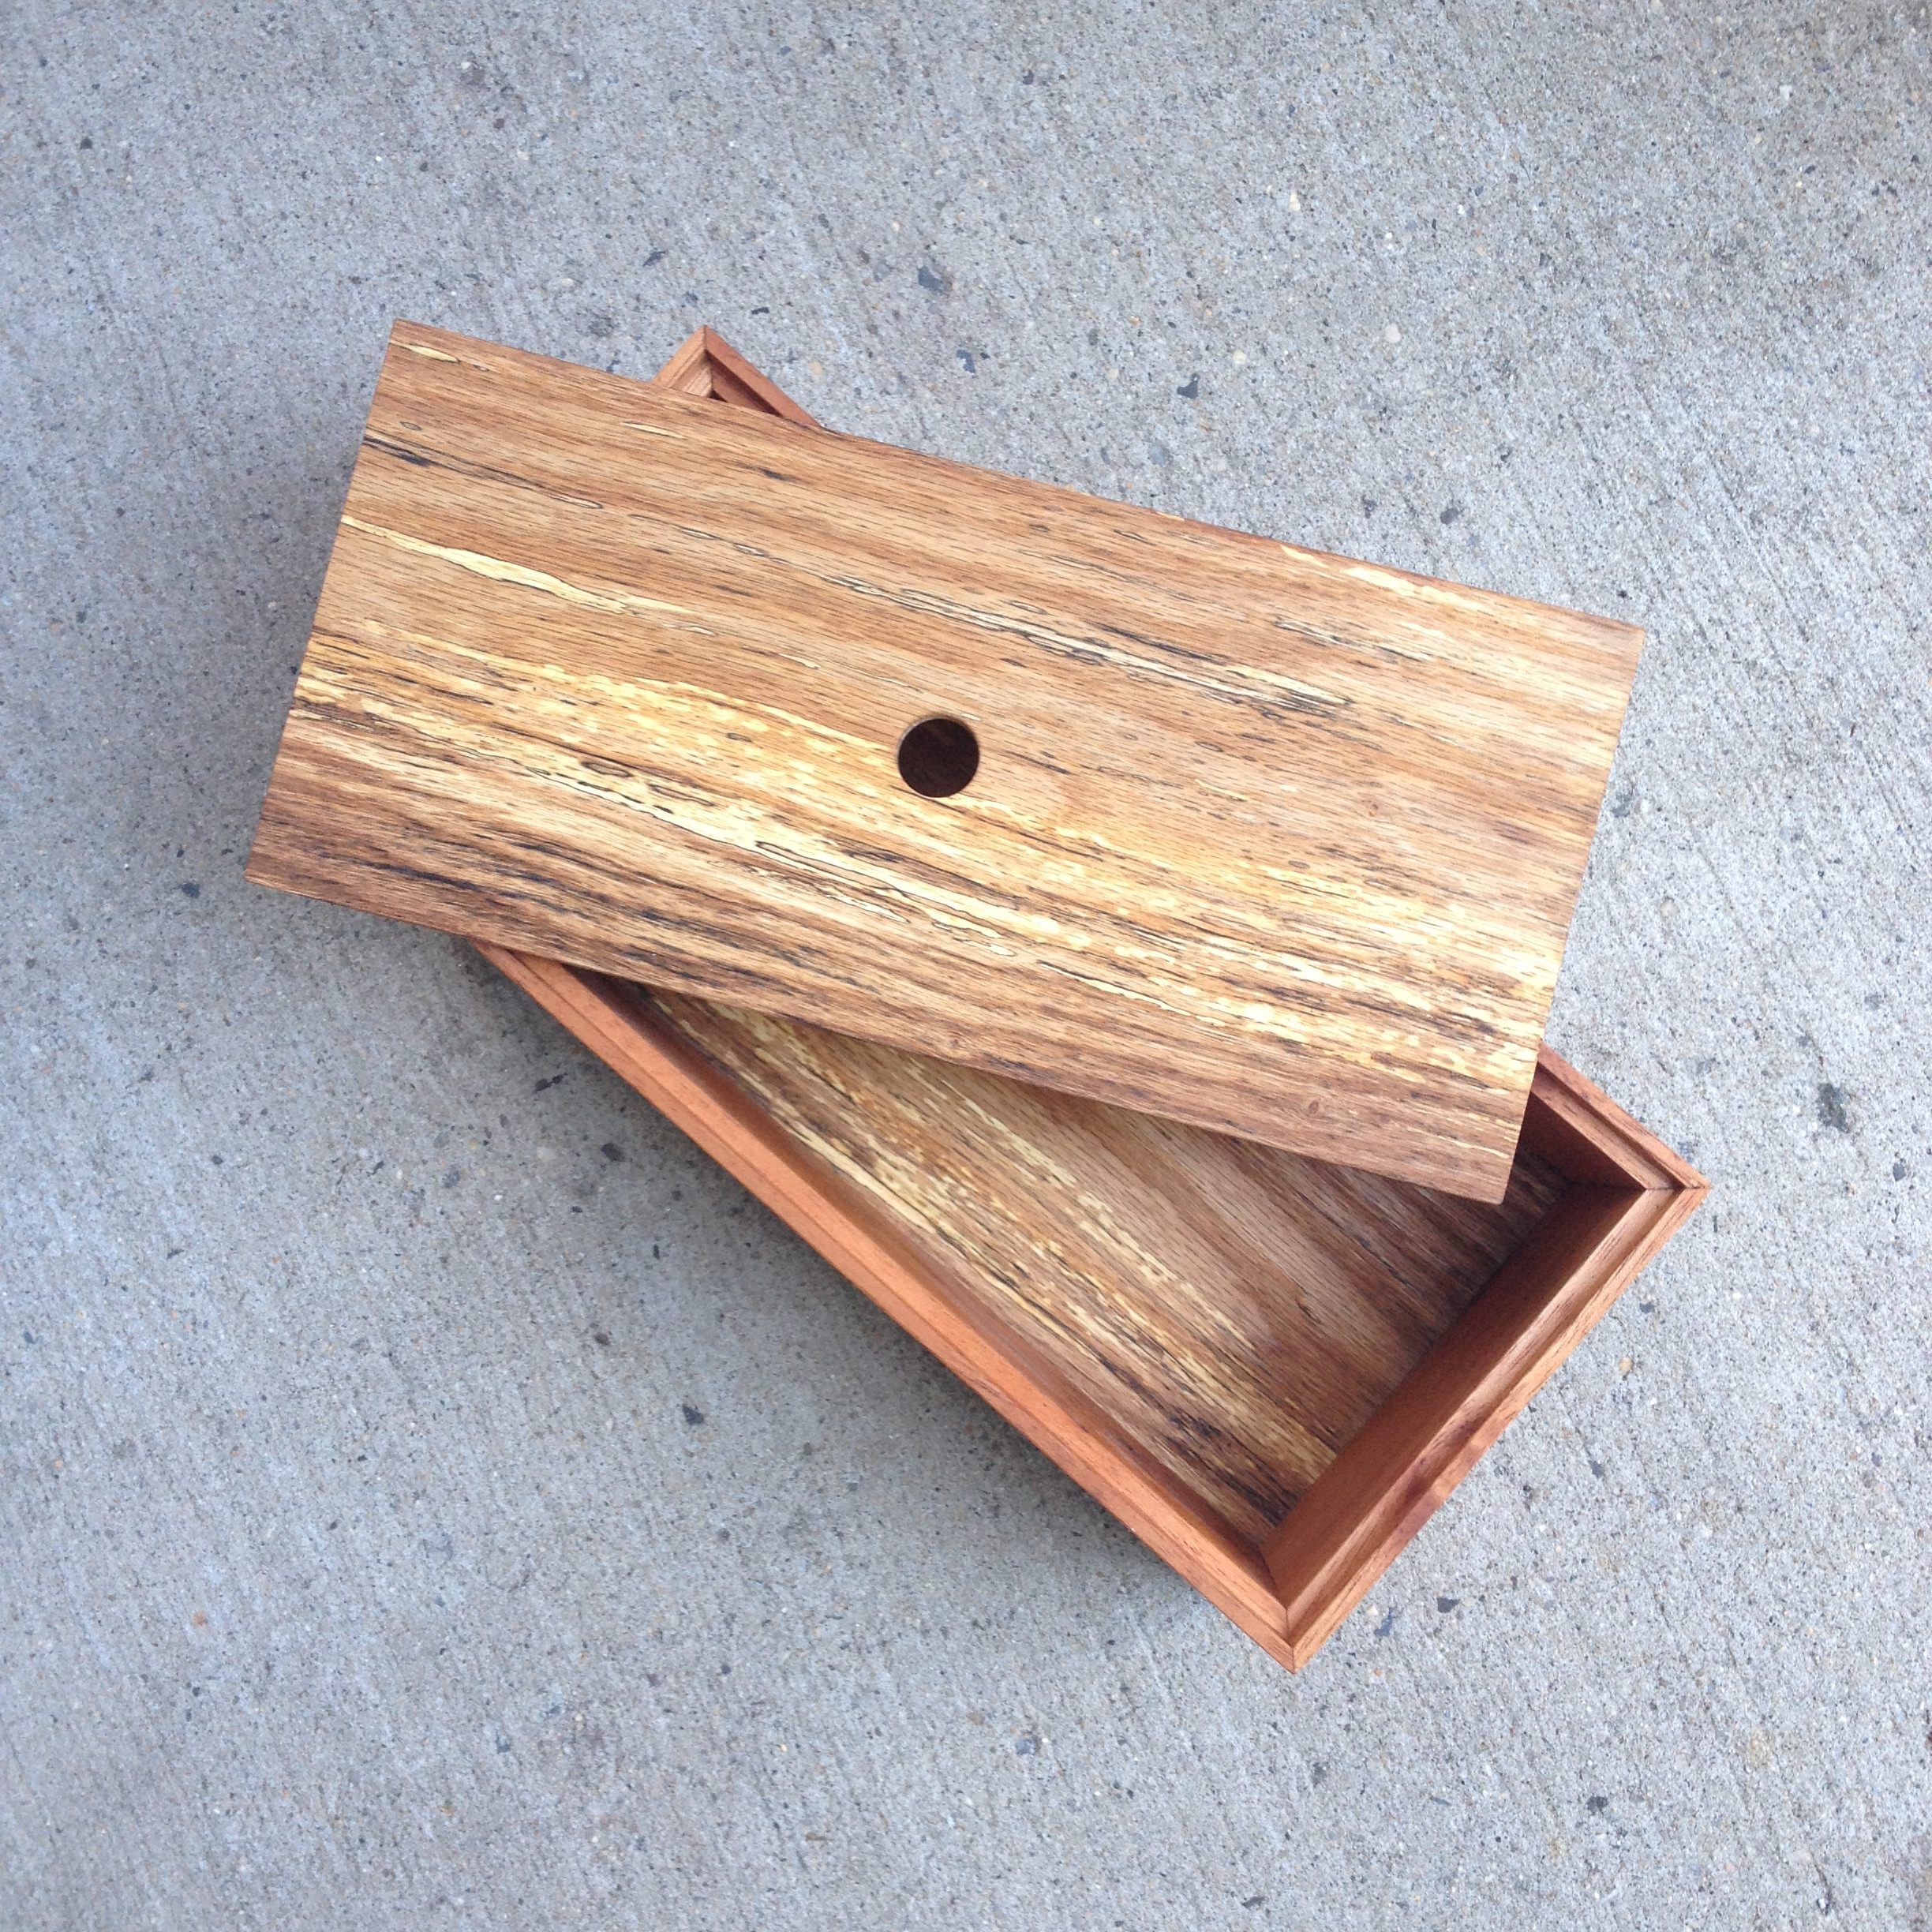 spanish cedar, spalted oak box